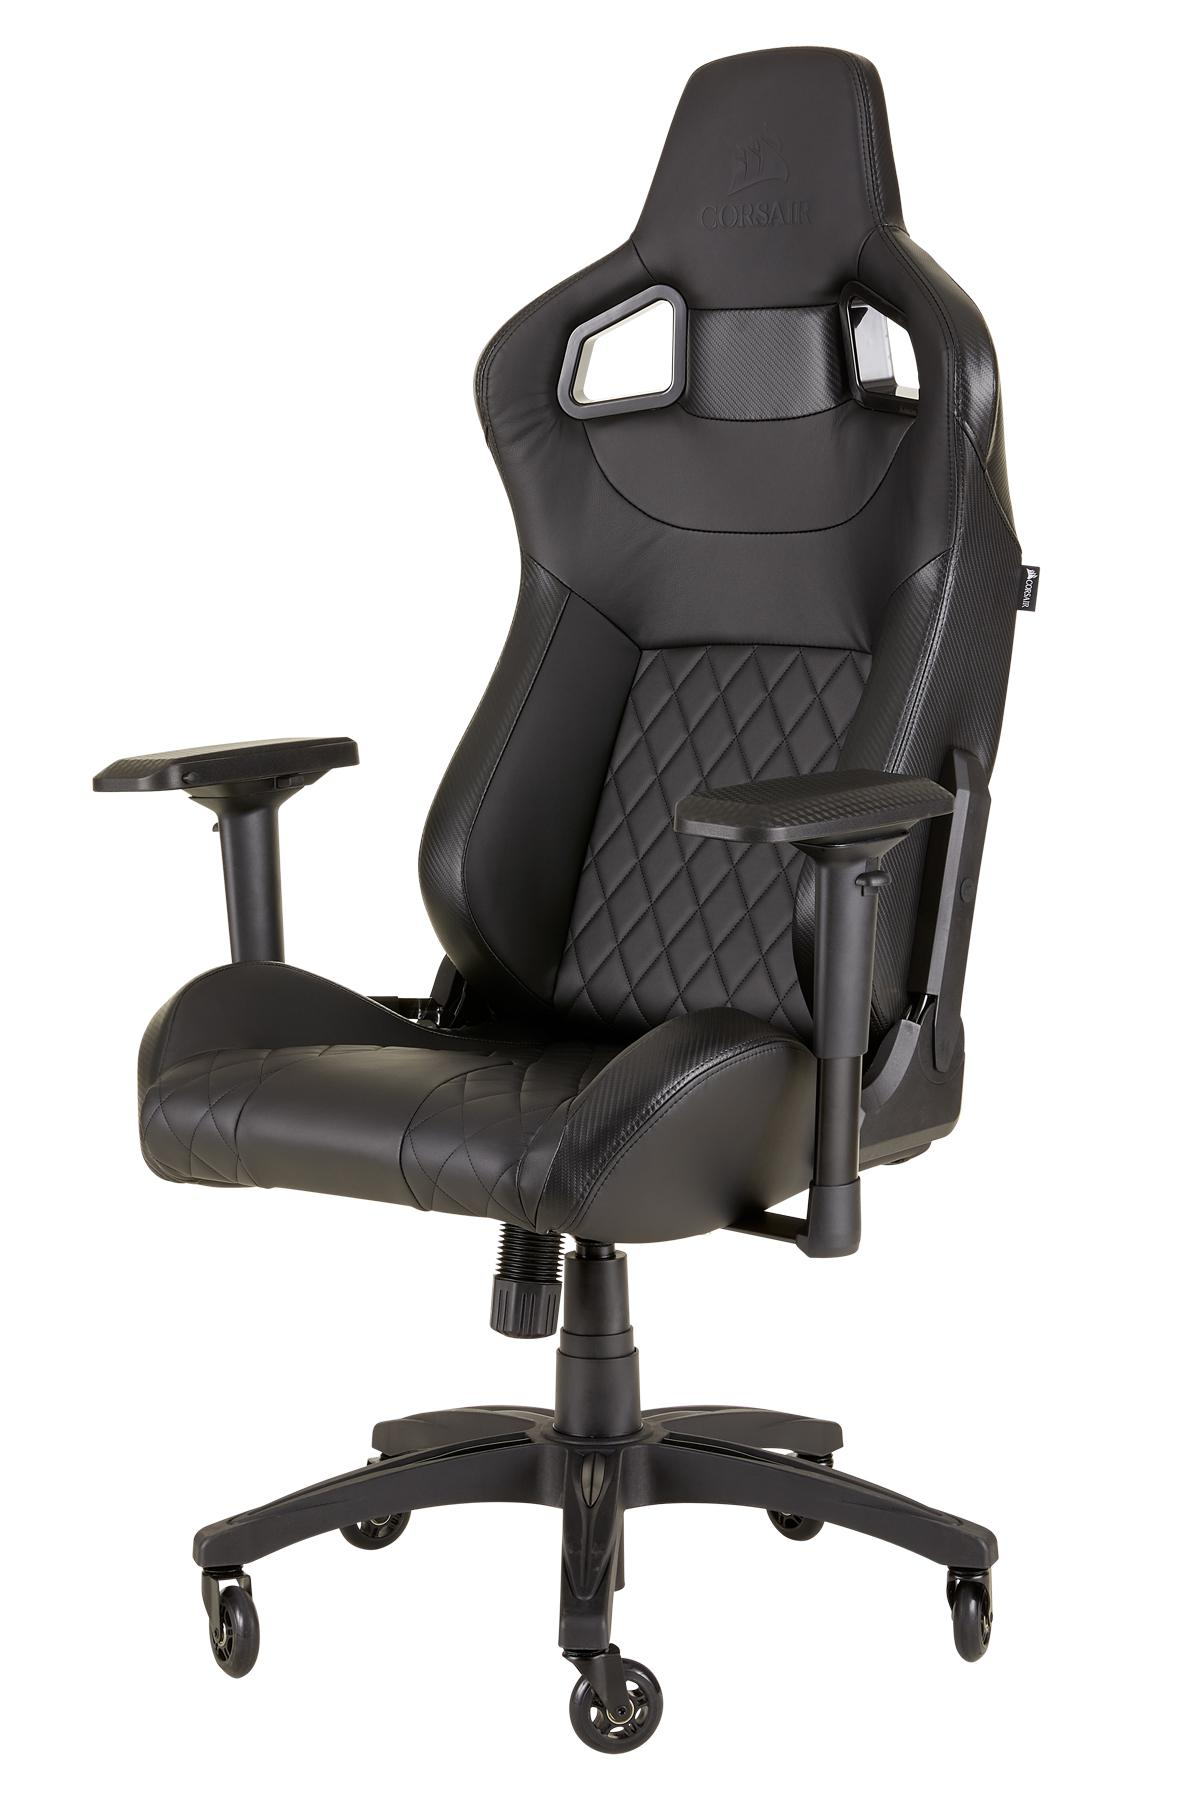 Admirable Corsair Launches New T2 Road Warrior And T1 Race Gaming Chairs Camellatalisay Diy Chair Ideas Camellatalisaycom